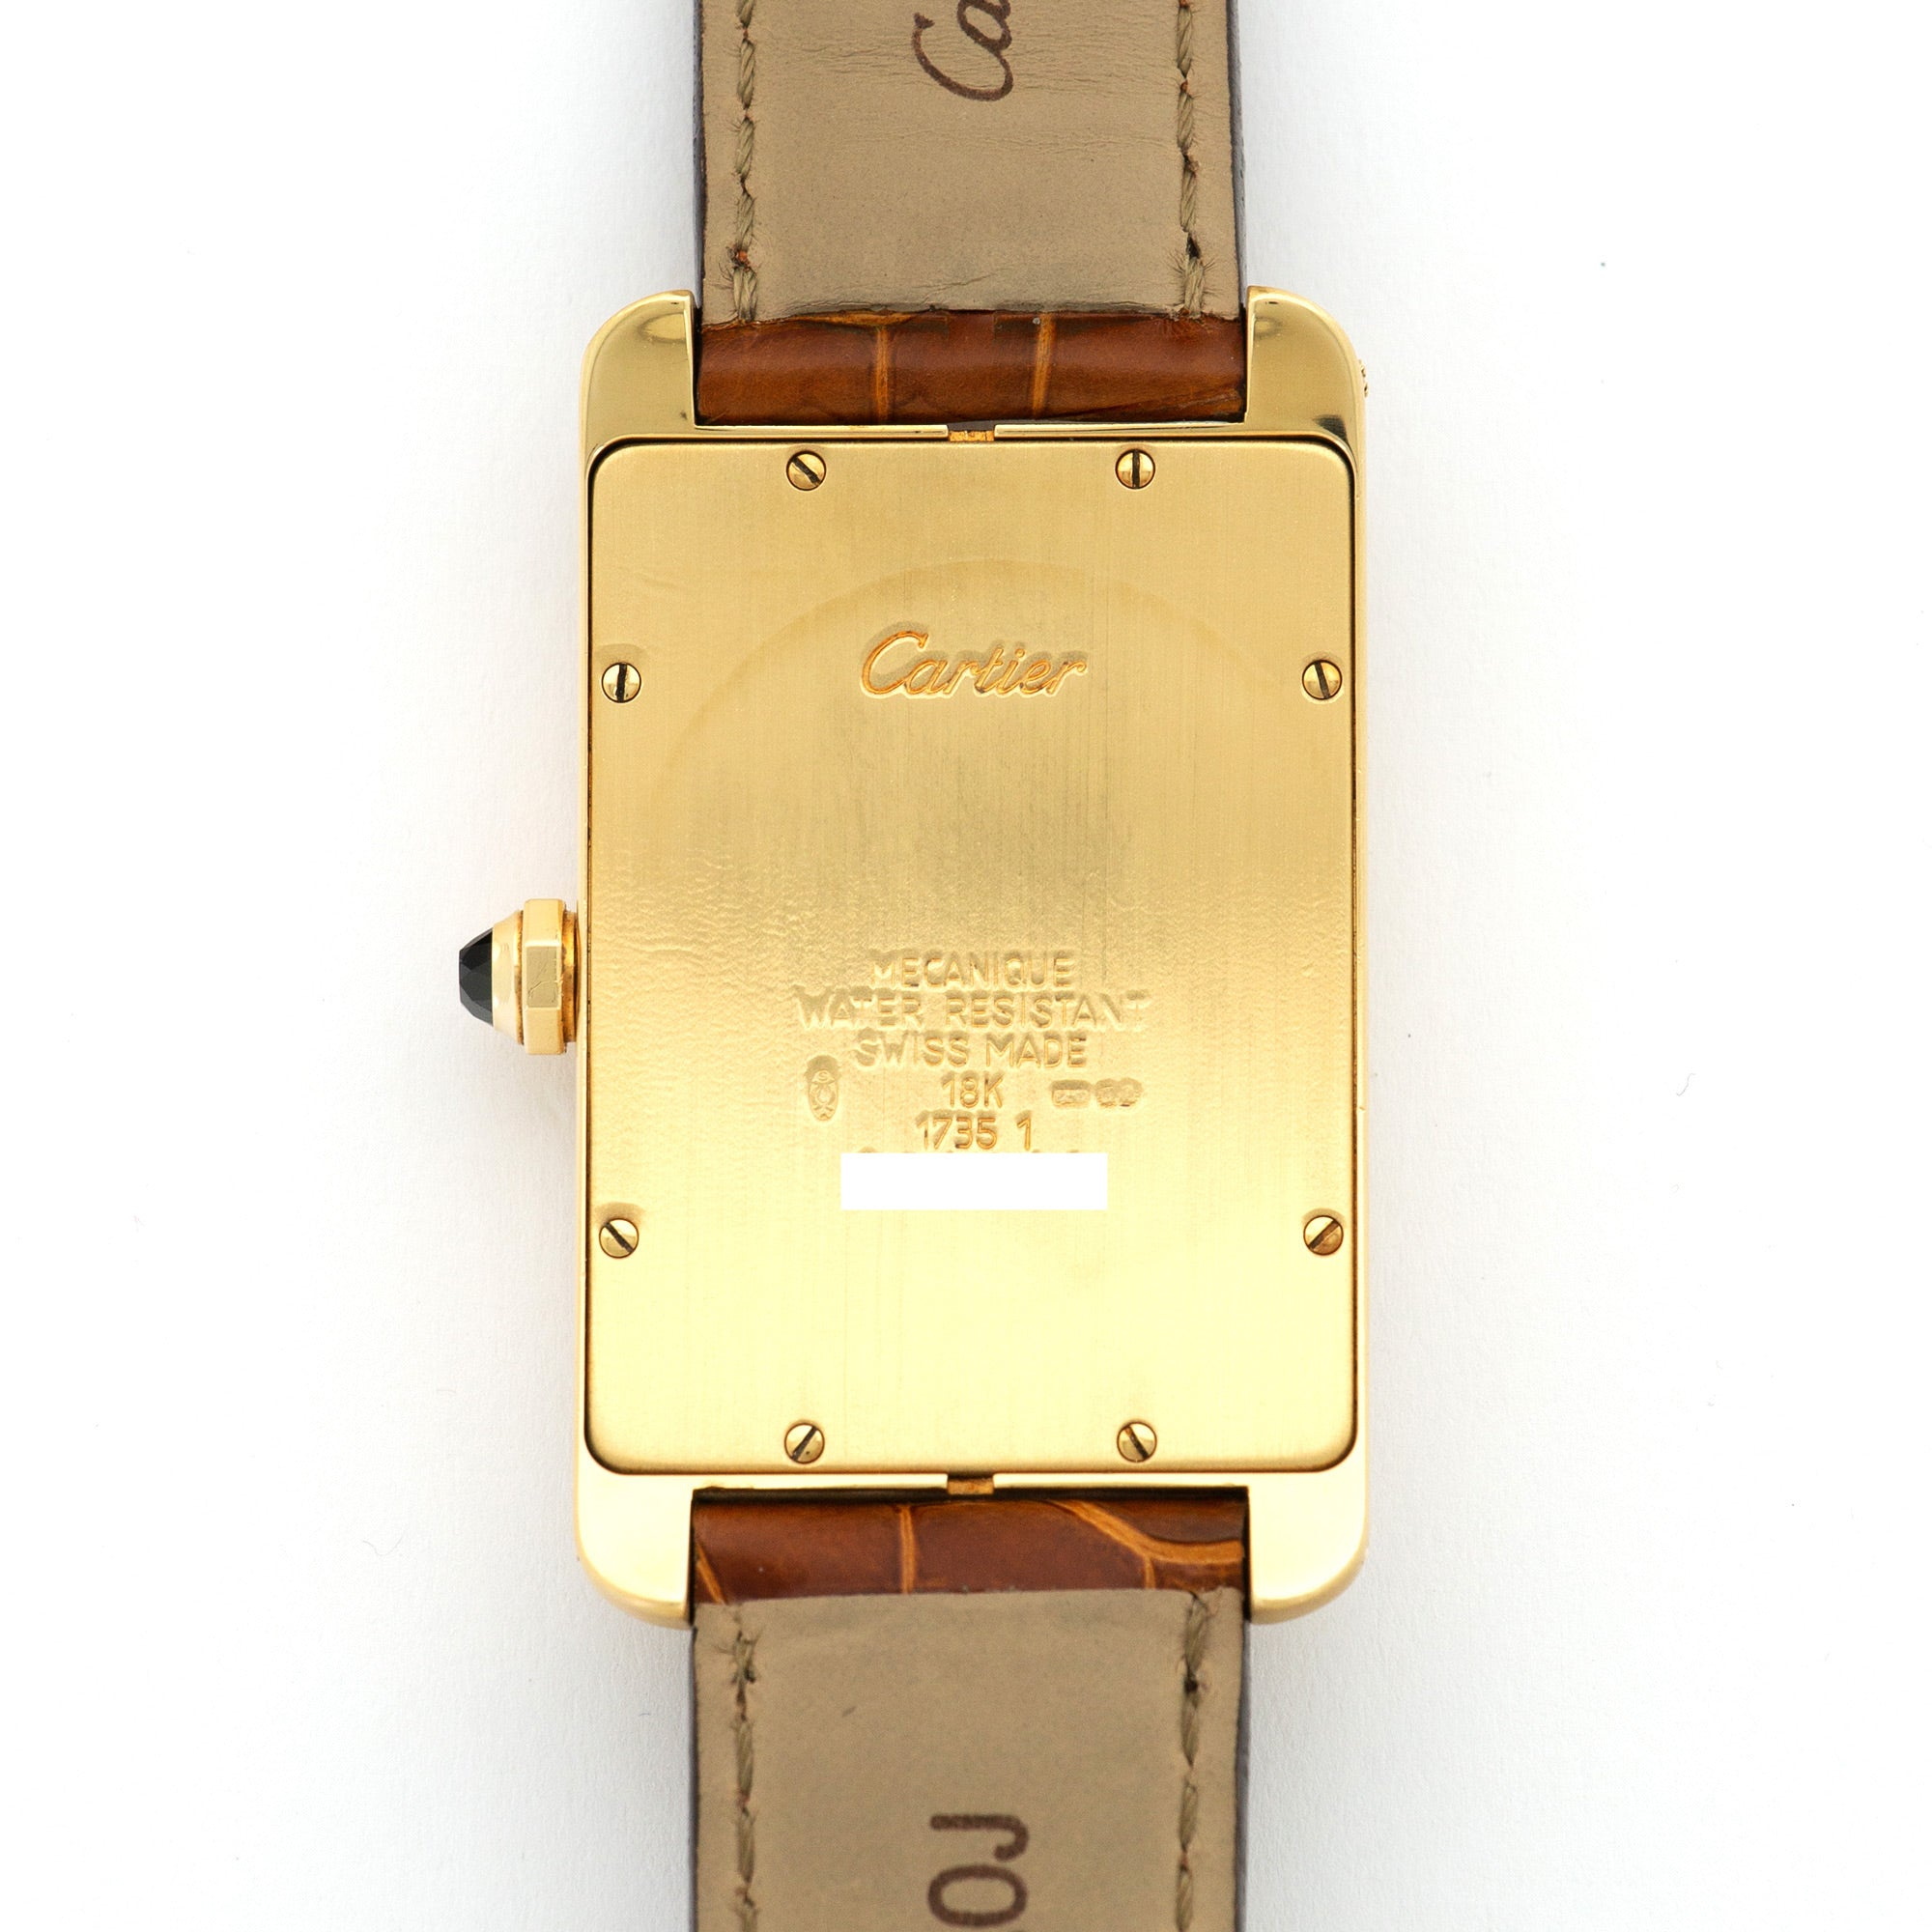 Cartier Tank Americaine 1735 18k YG  Excellent Unisex 18k YG Silver with Black Roman Numerals 26 X 45mm Manual 2000s Brown Crocodile Leather Travel Case